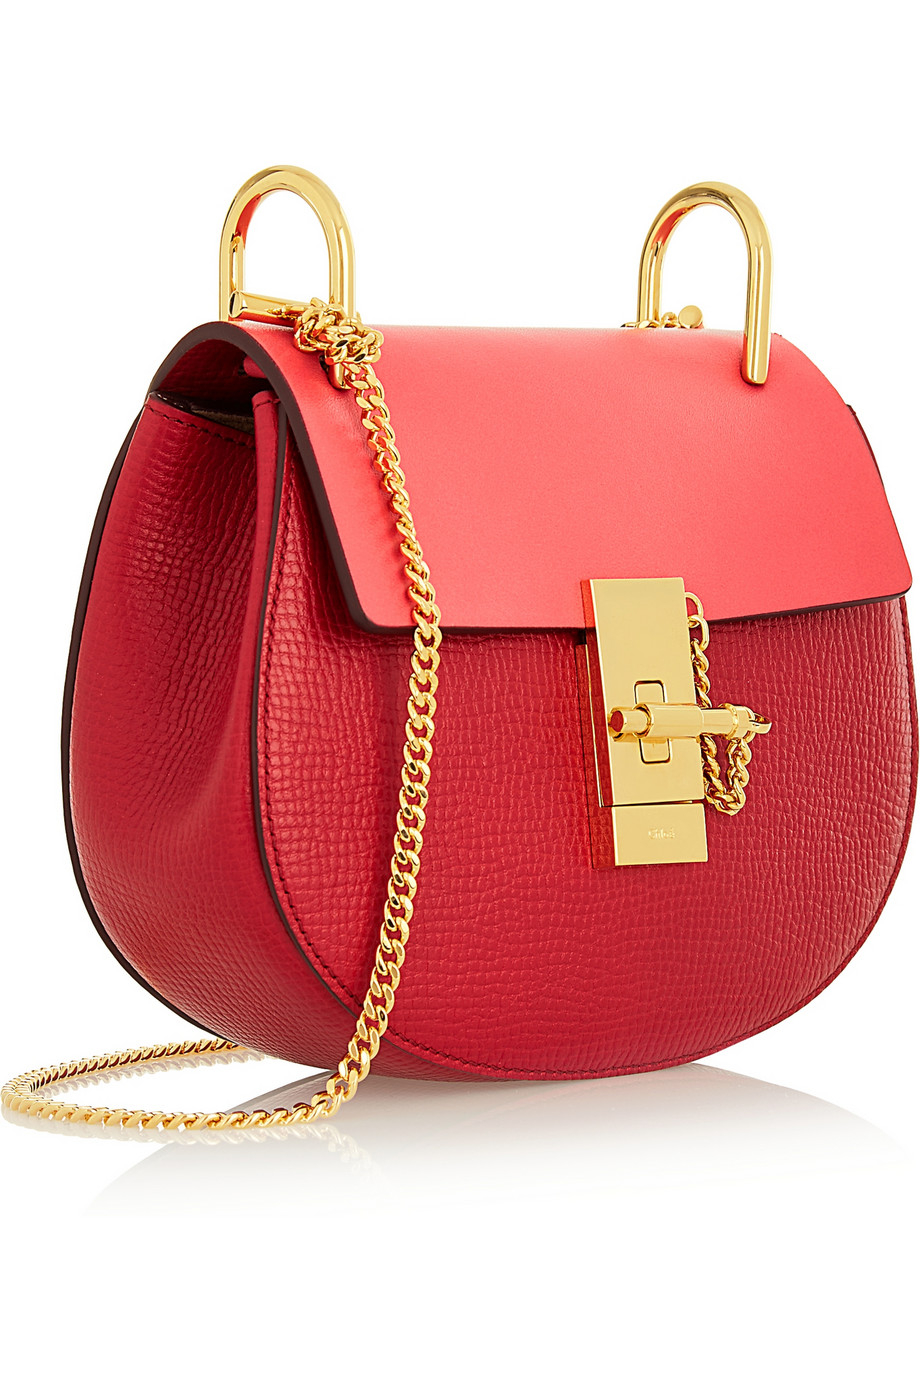 chloe bag replica - drew mini chain shoulder bag, red - chloe